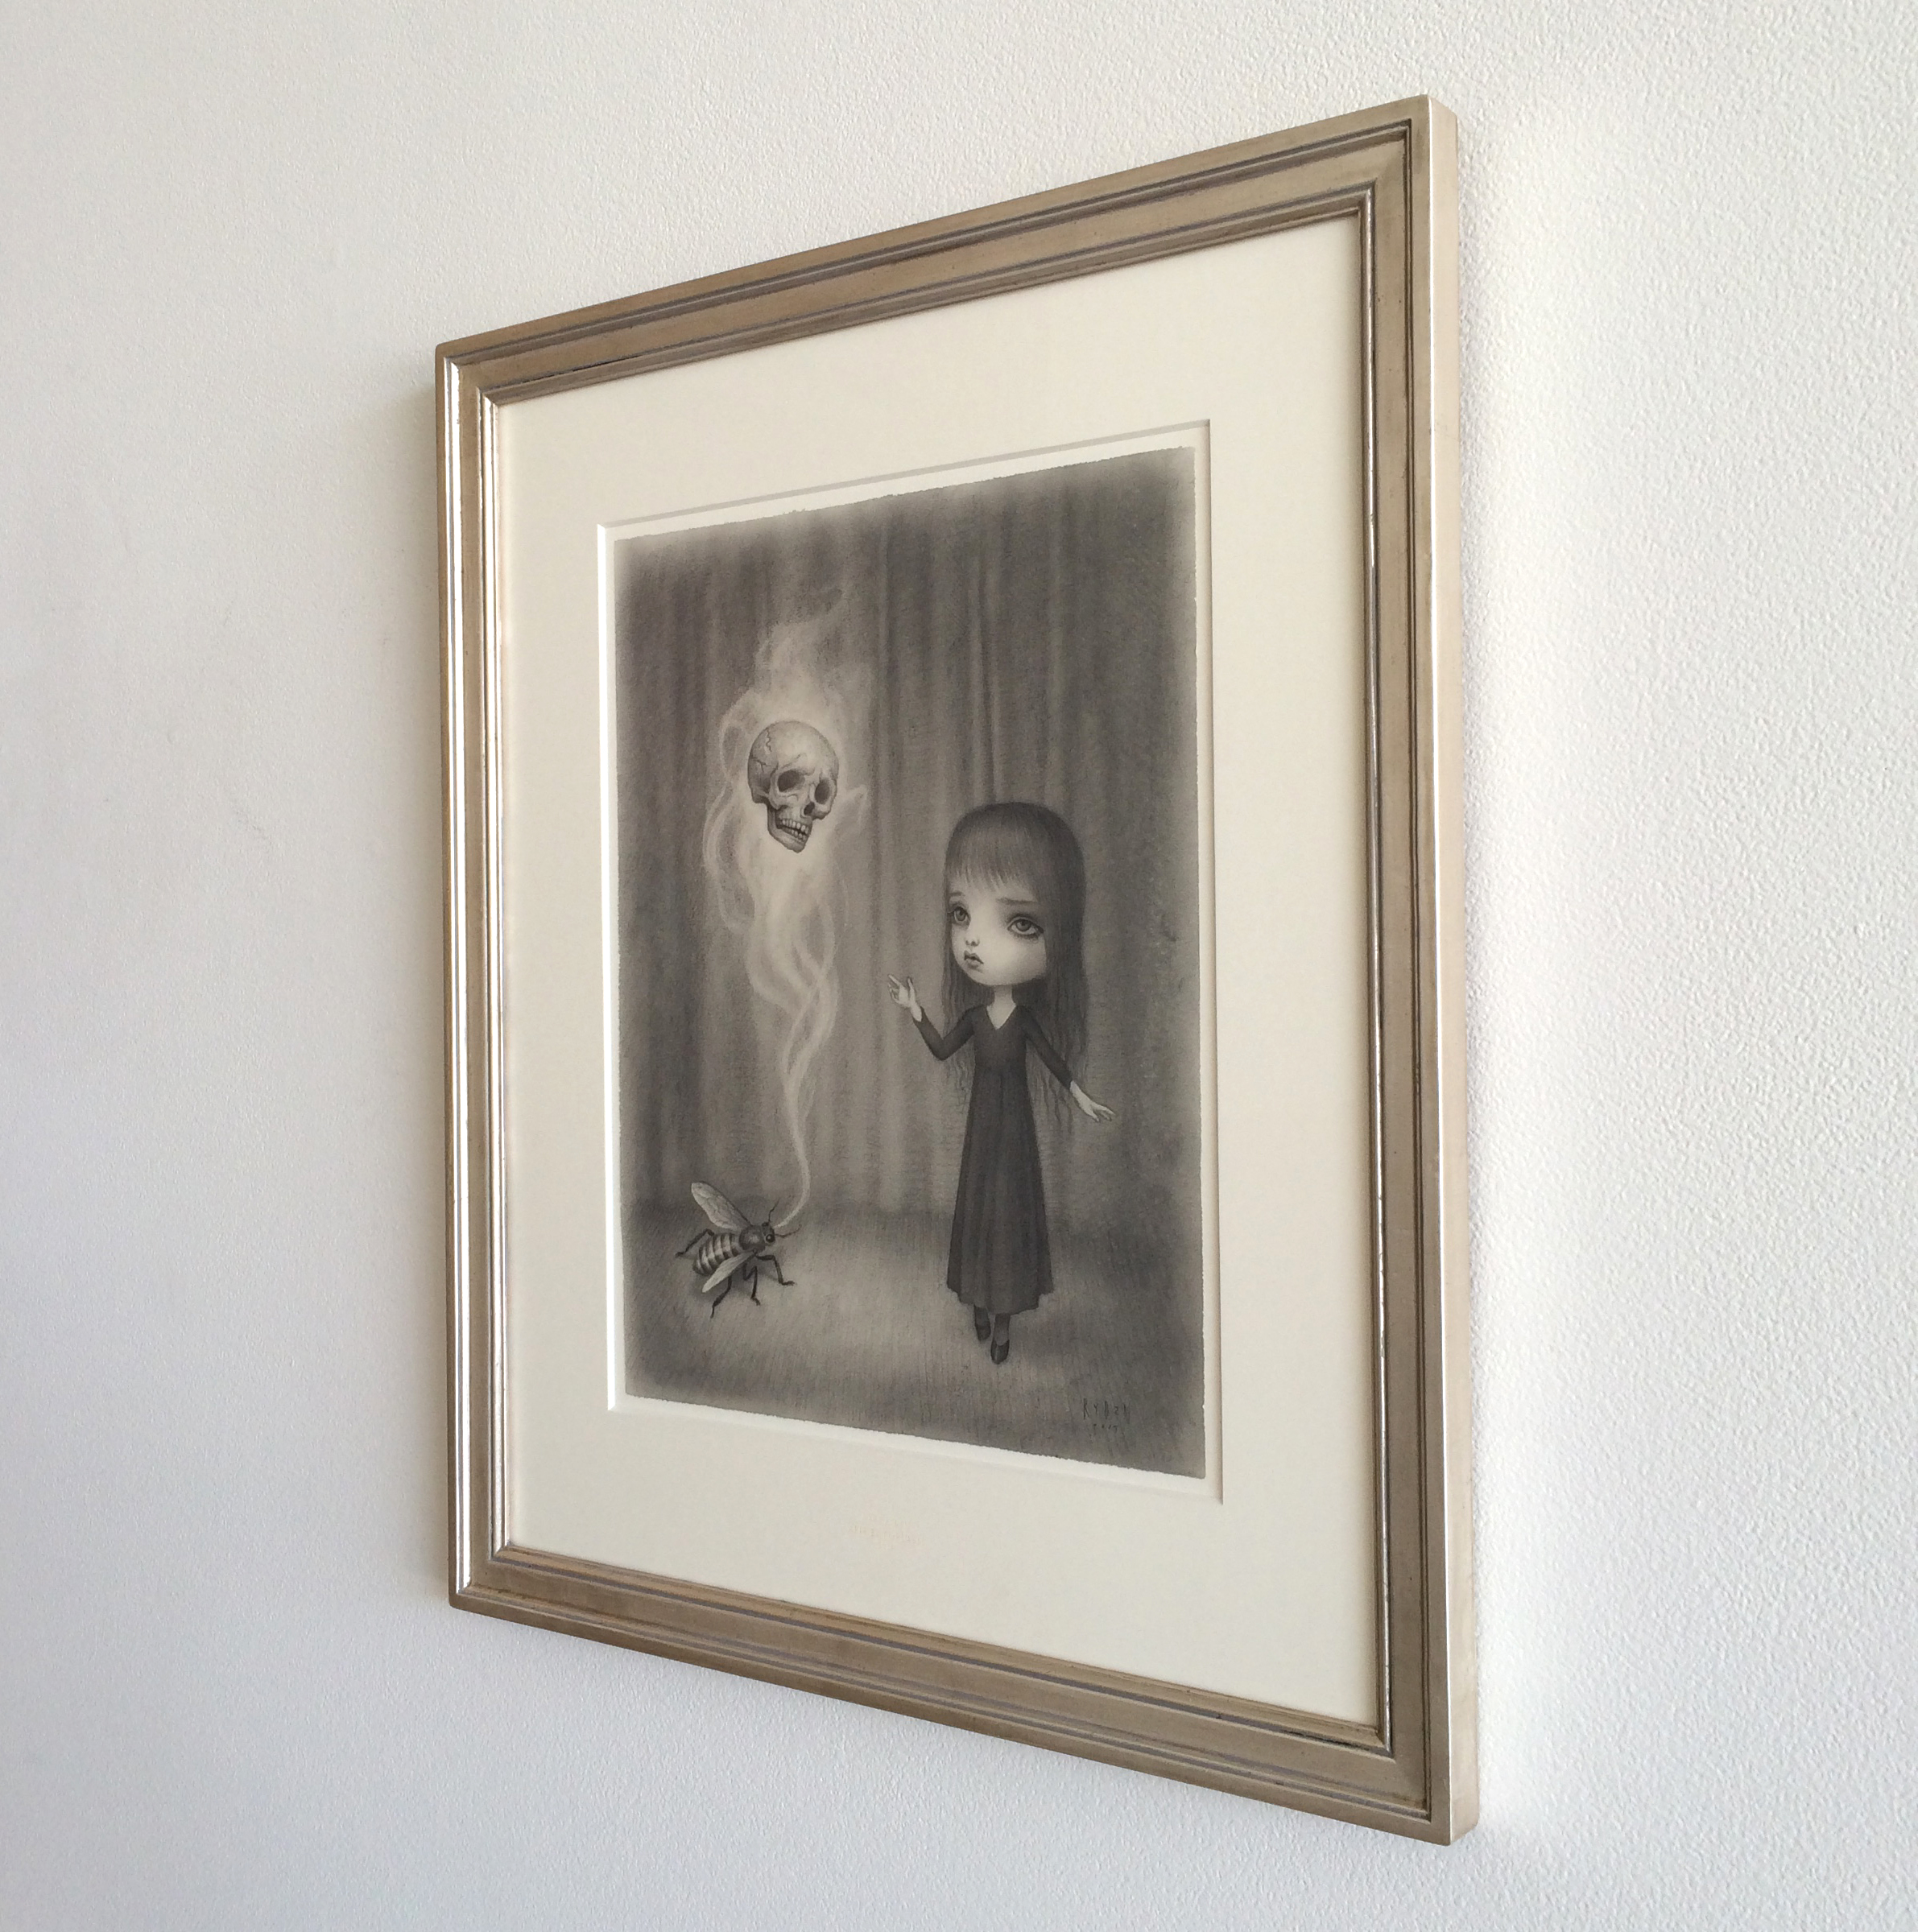 Original Drawing by Mark Ryden (graphite on paper)